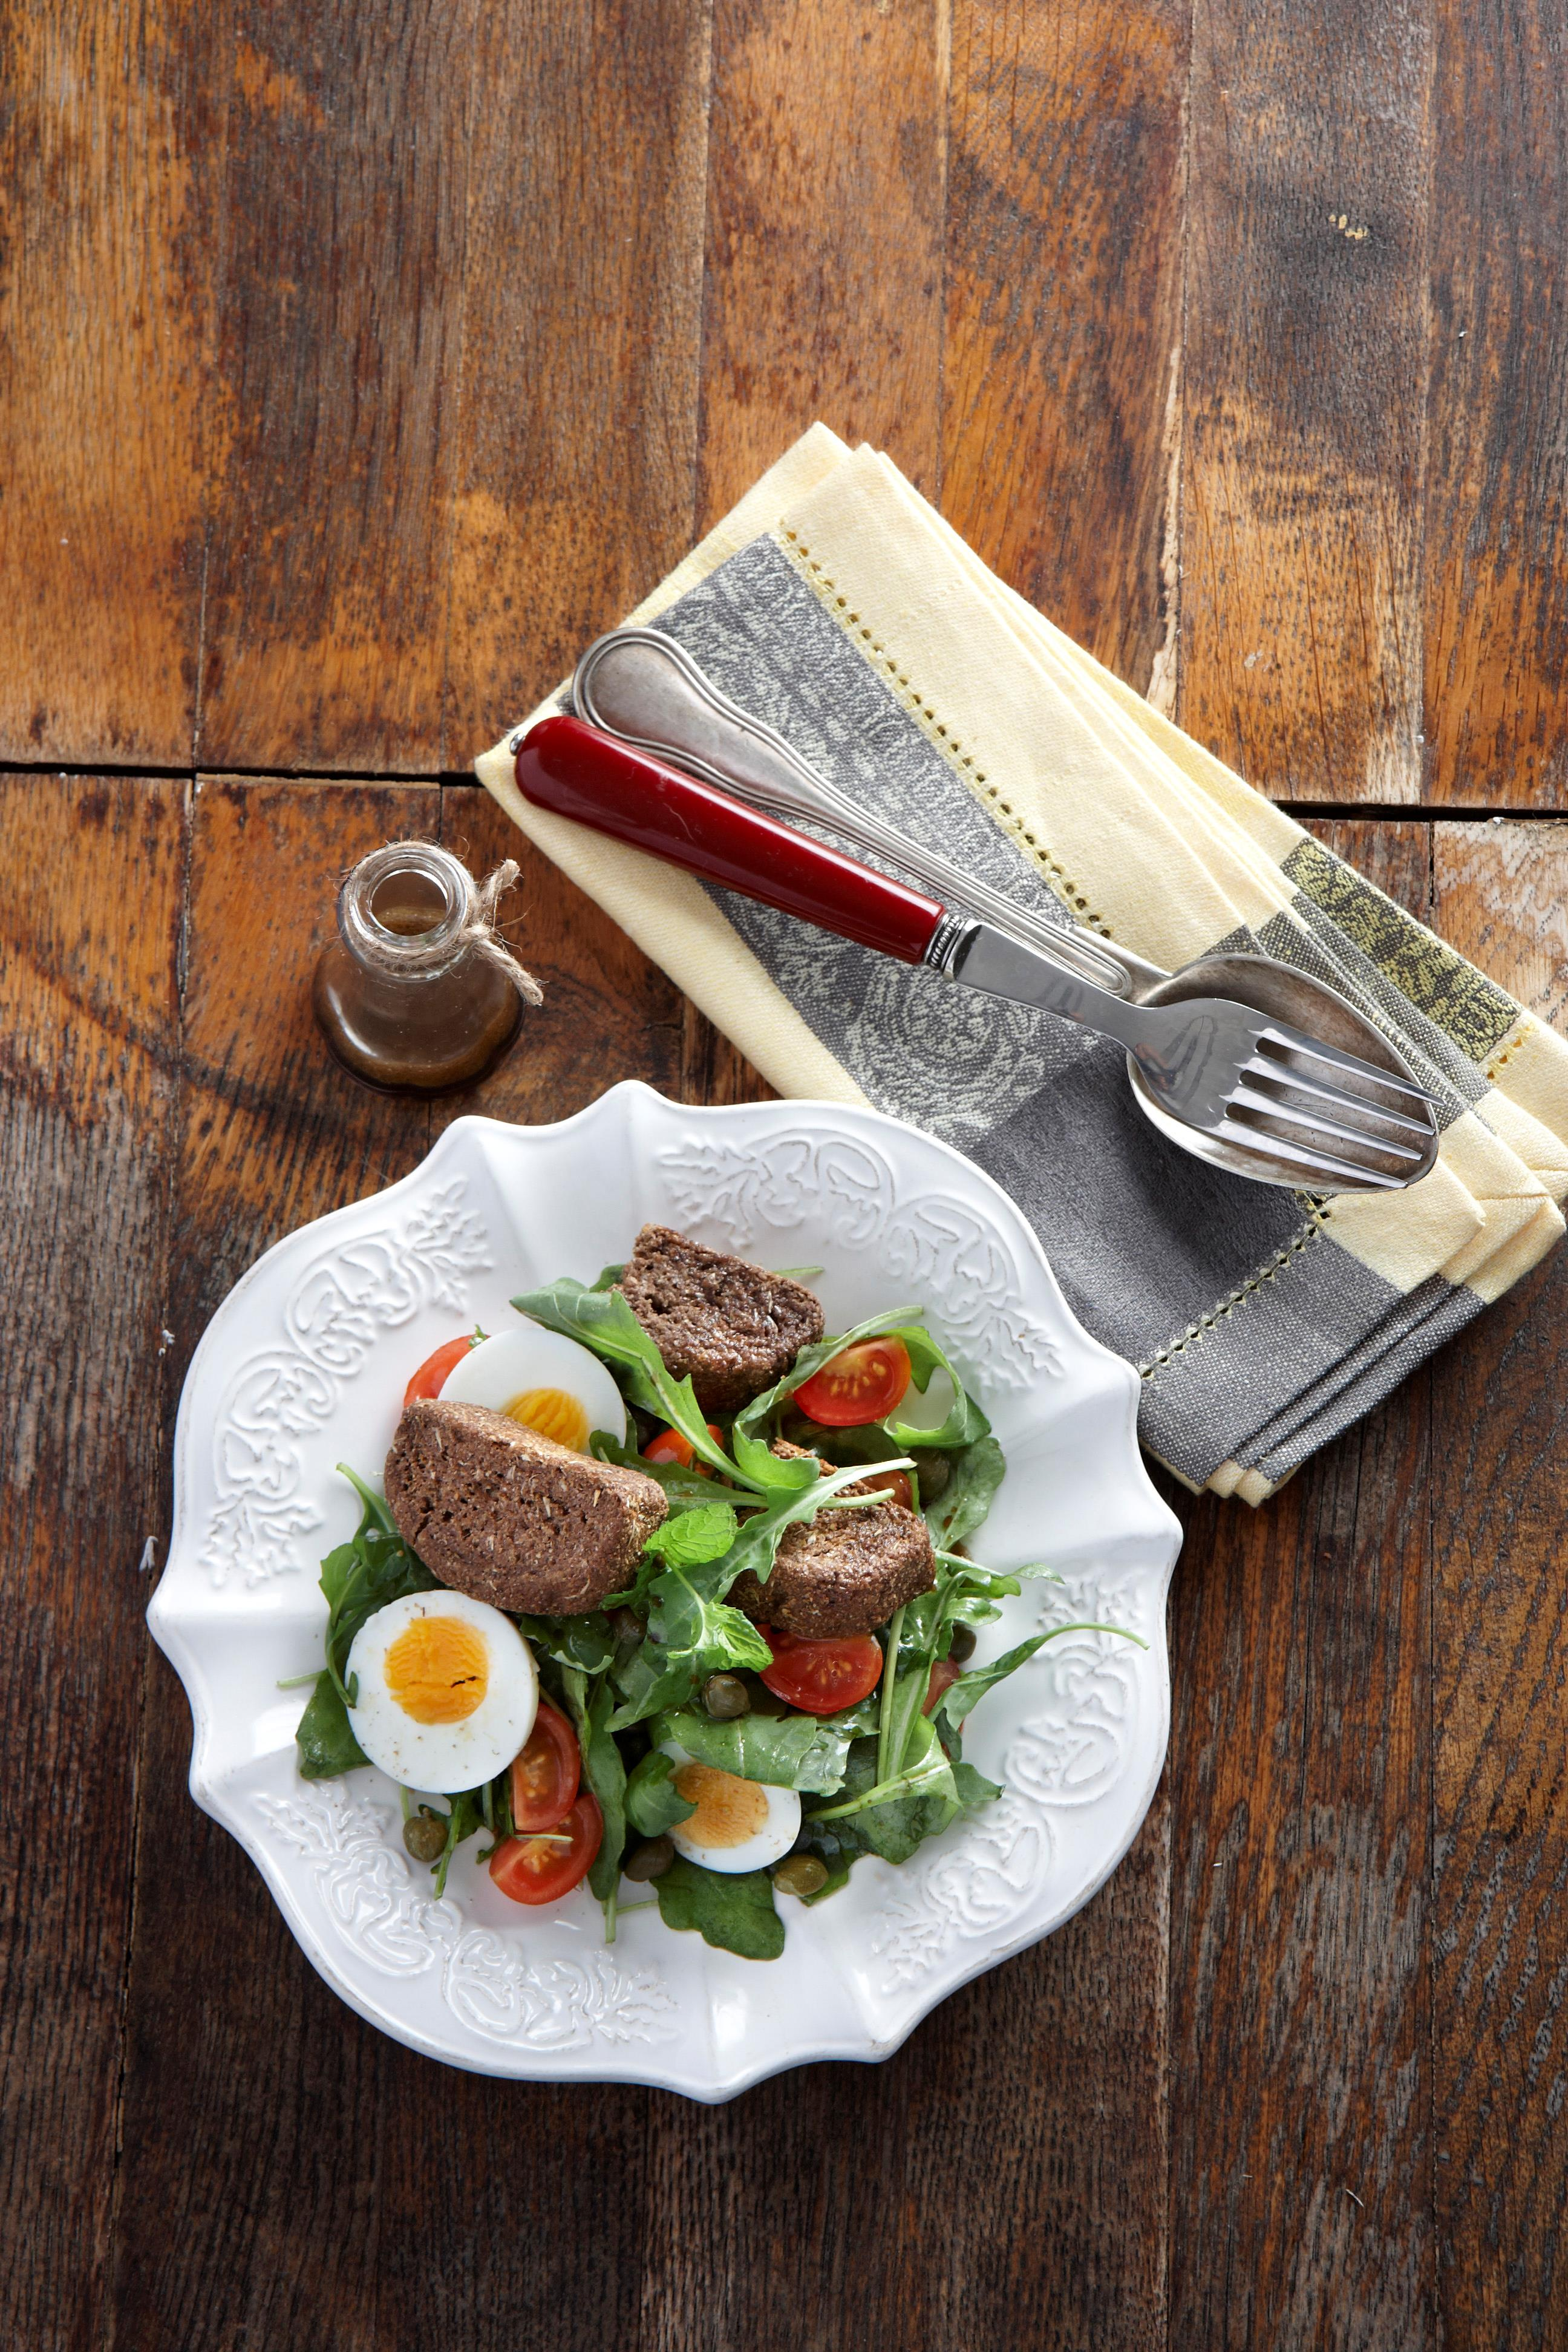 Arugula salad with rusks (whole grain mini rusks with 4 cereal and carob), mint and boiled egg